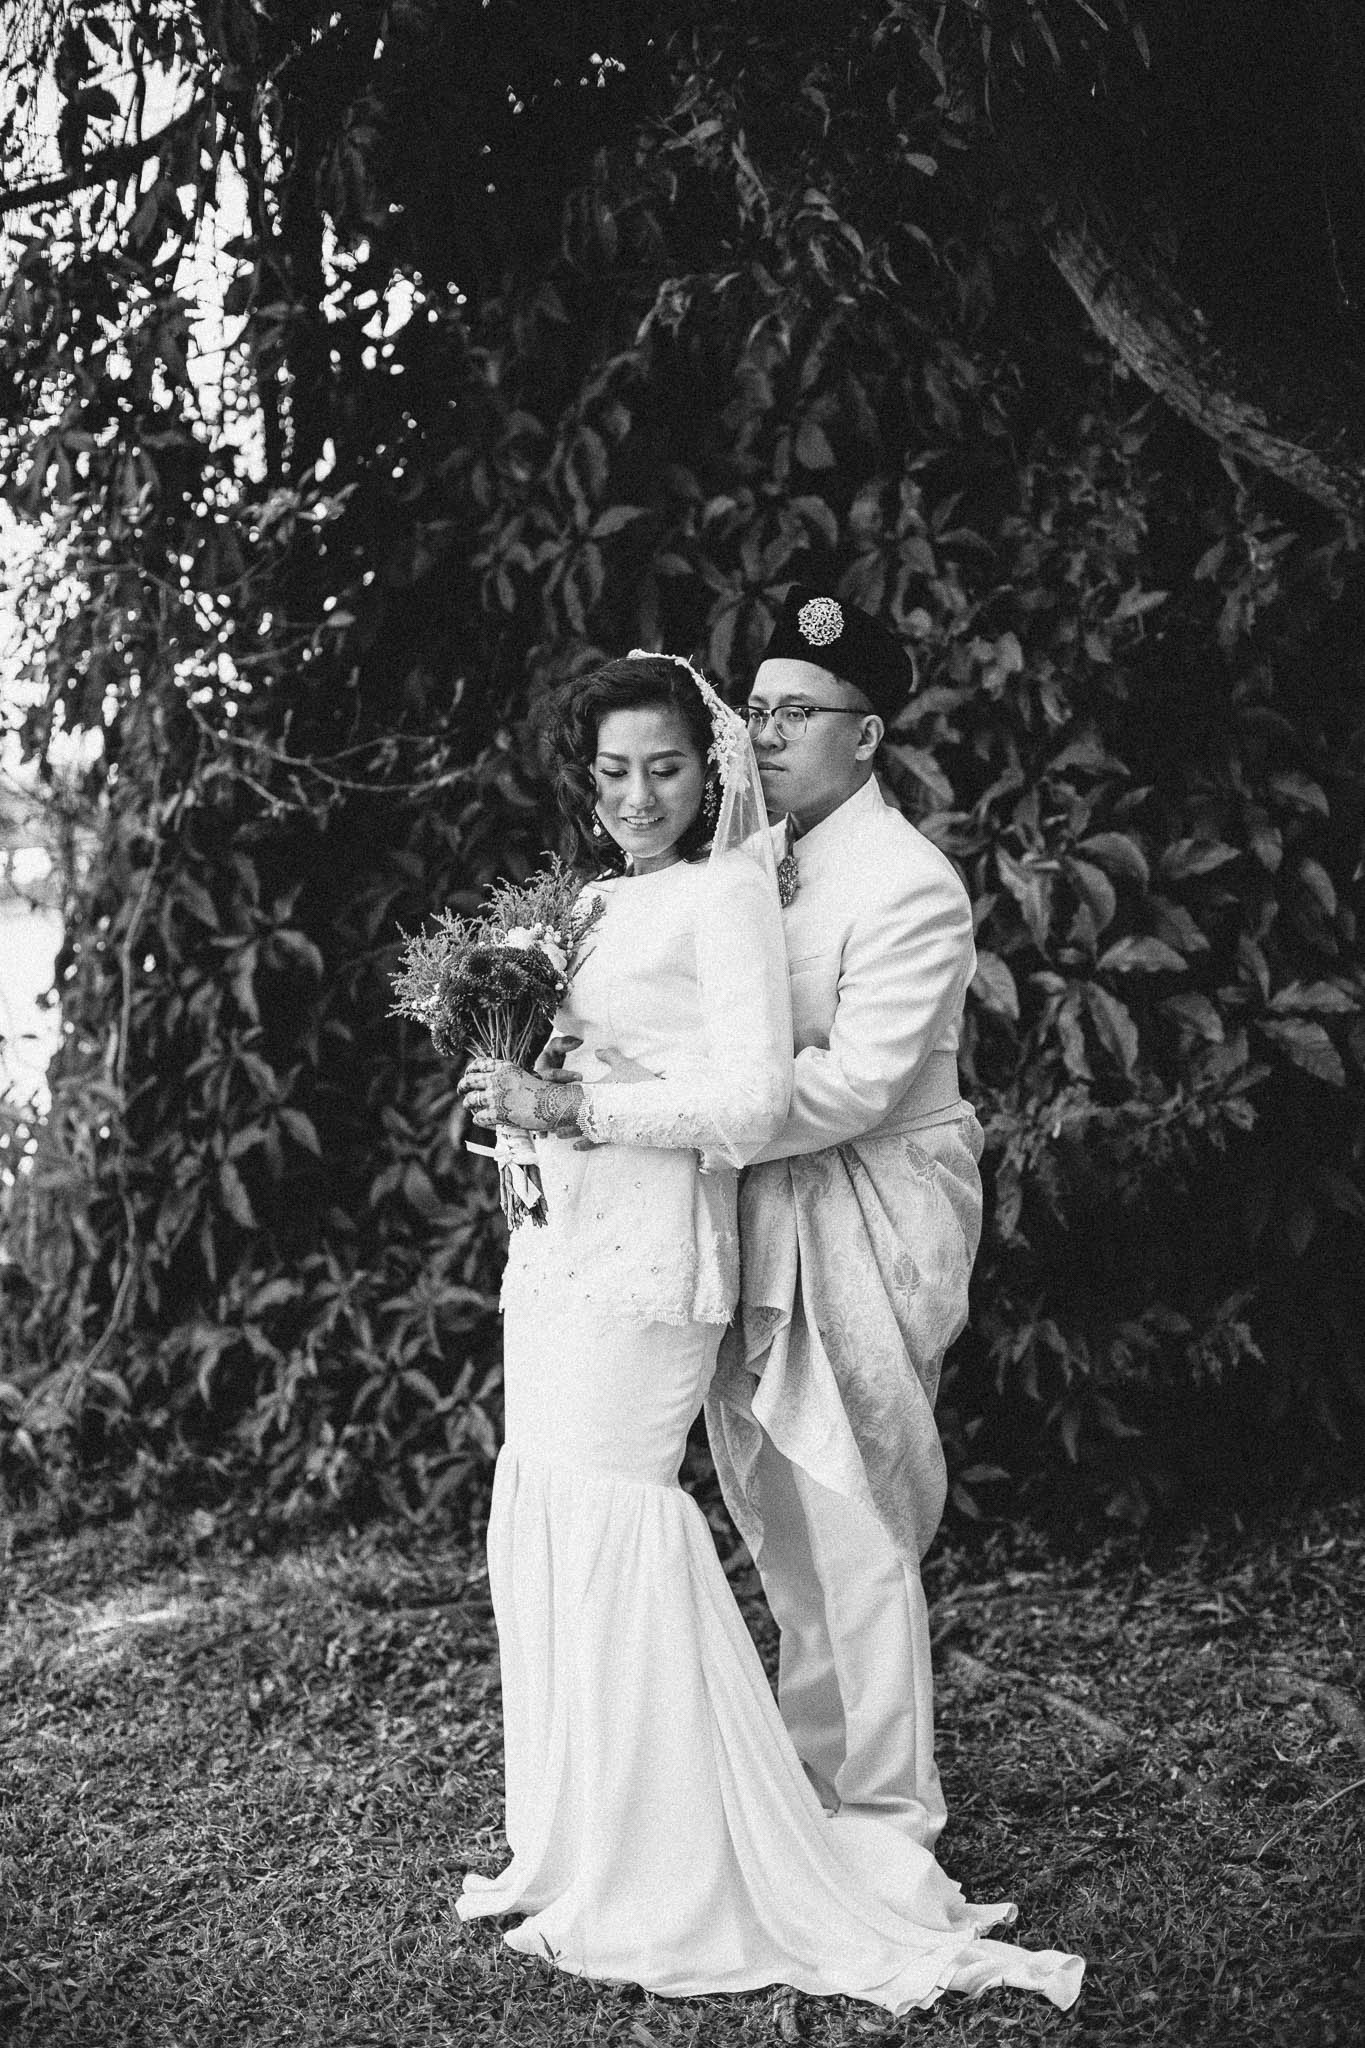 singapore-wedding-photographer-we-made-these-2016-selects-017.jpg